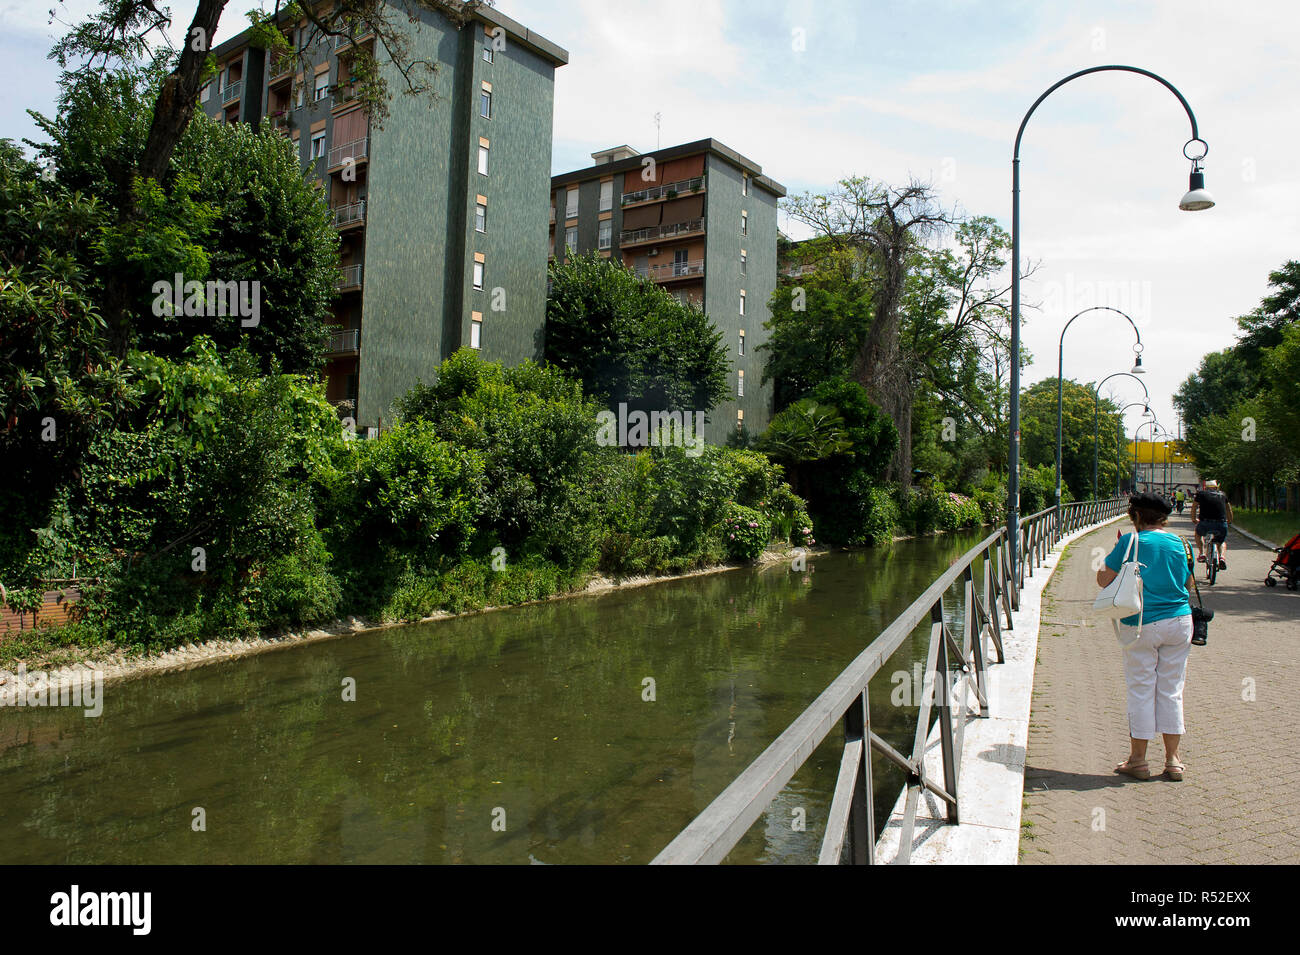 Italy, Lombardy, Milan, Martesana canal, connects the river Adda with Milan. Stock Photo